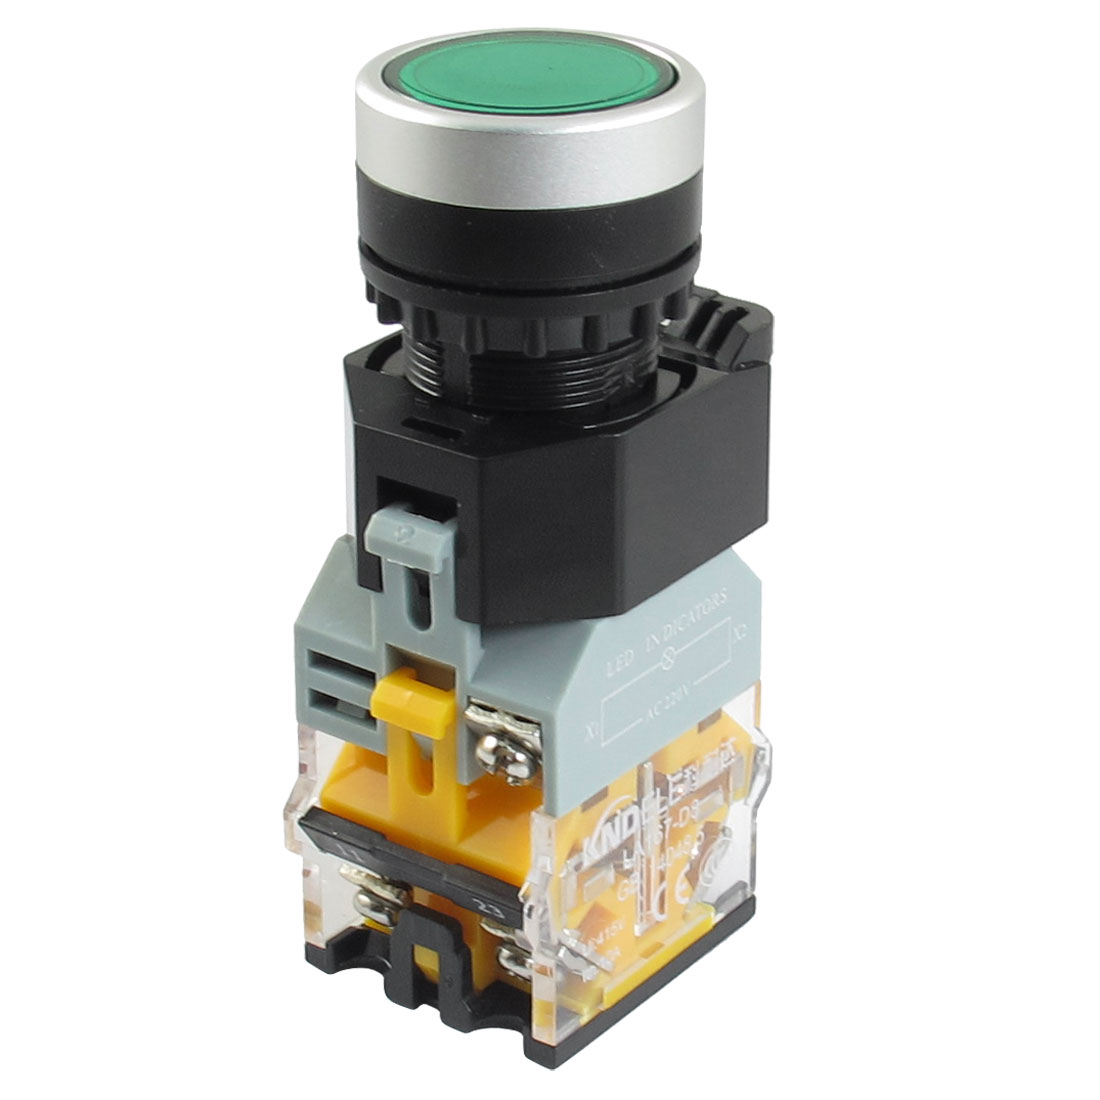 AC 415V 10A 1NO 1NC DPST Green Flat Momentary Push Button Switch w LED Light